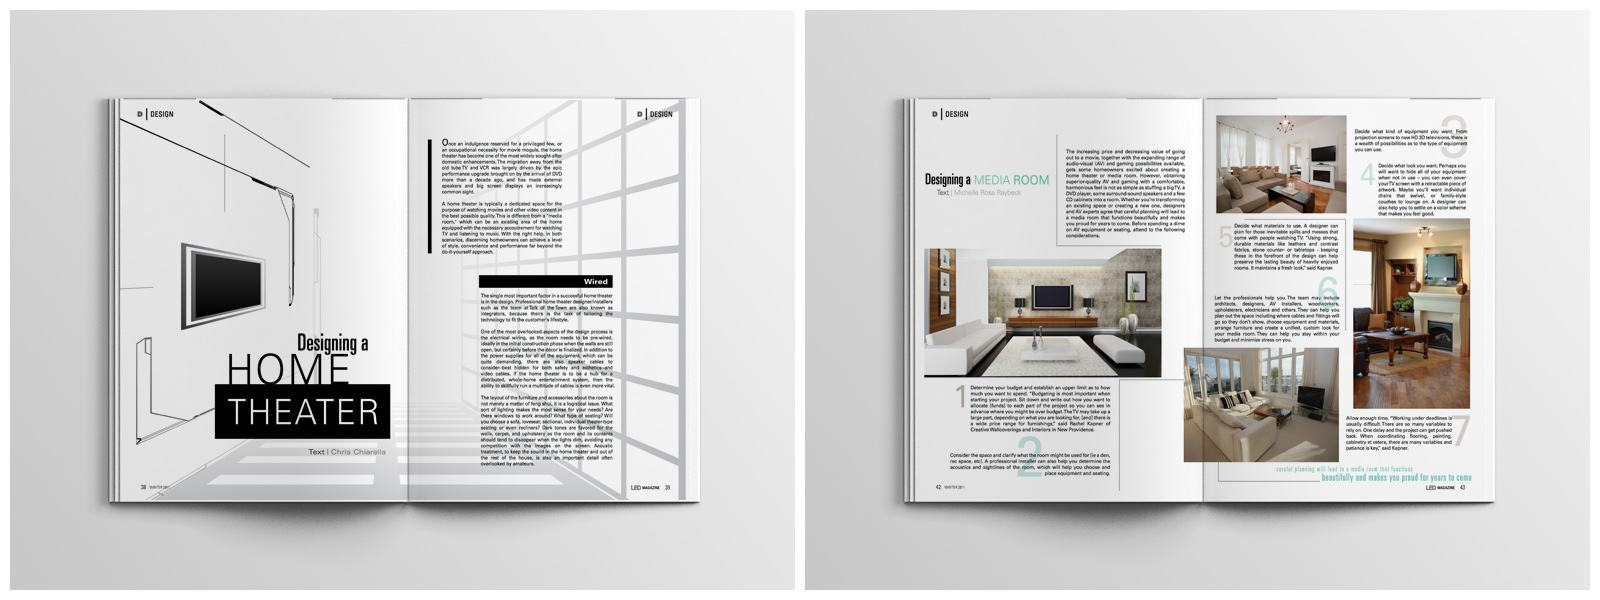 RE EVOLUTION // Aspire - Editorial Design